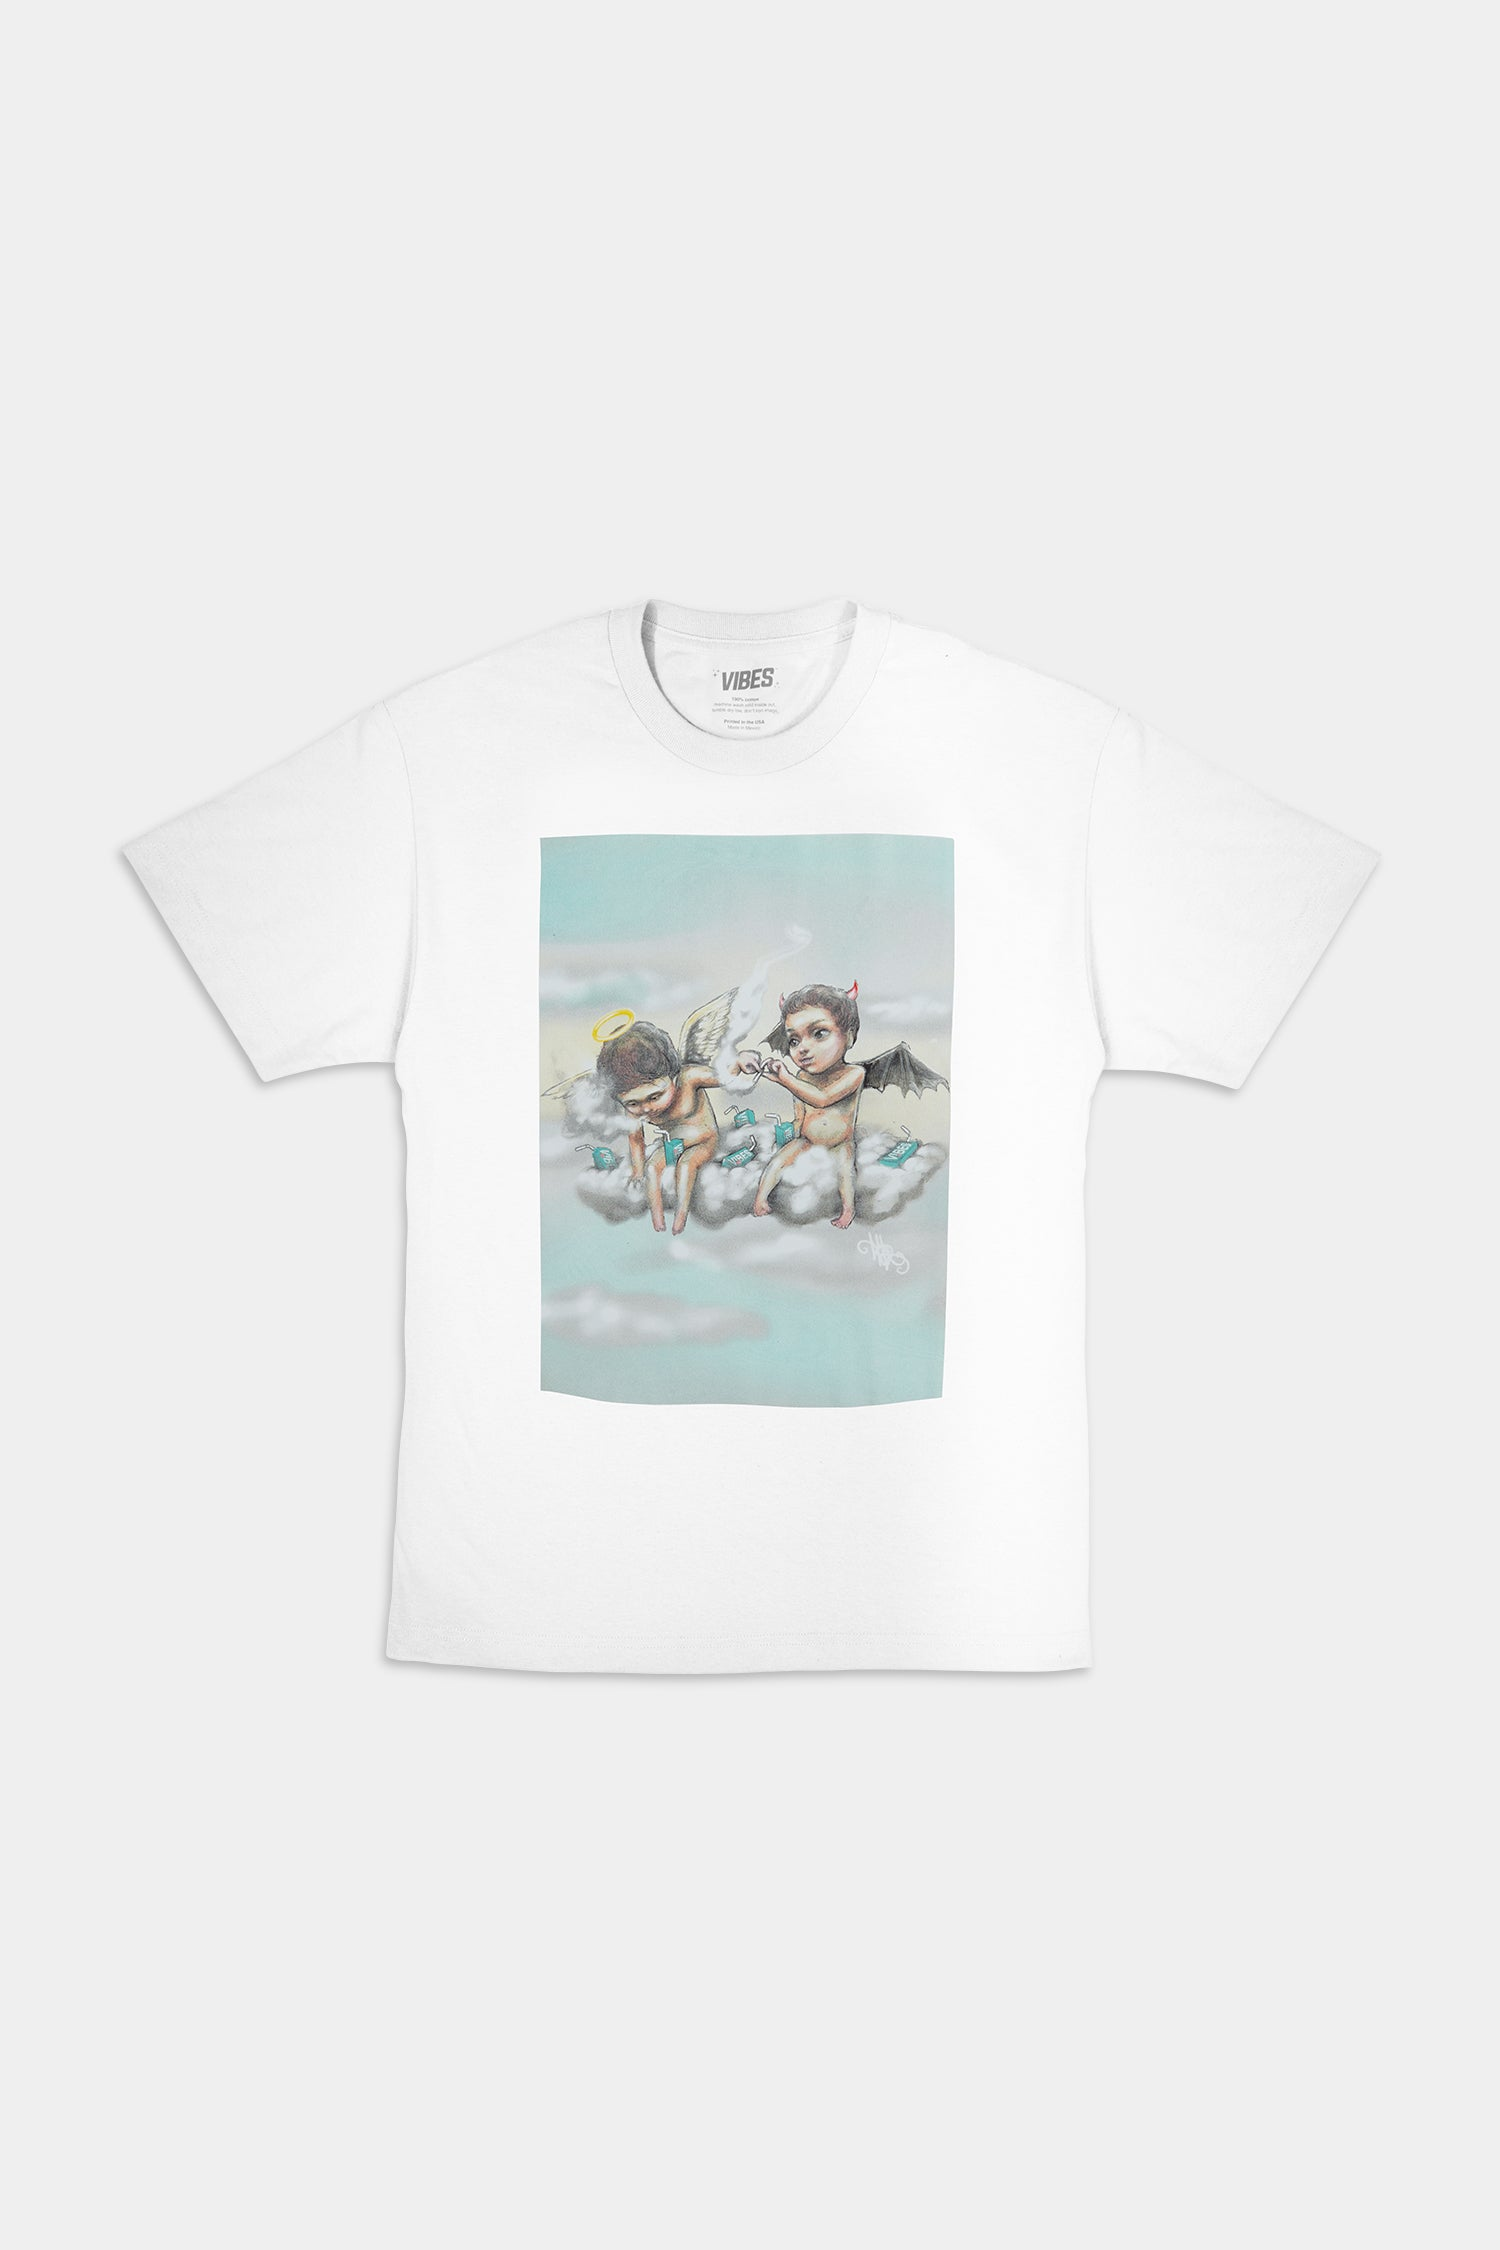 VIBES Guardian Angels Collection T-Shirt